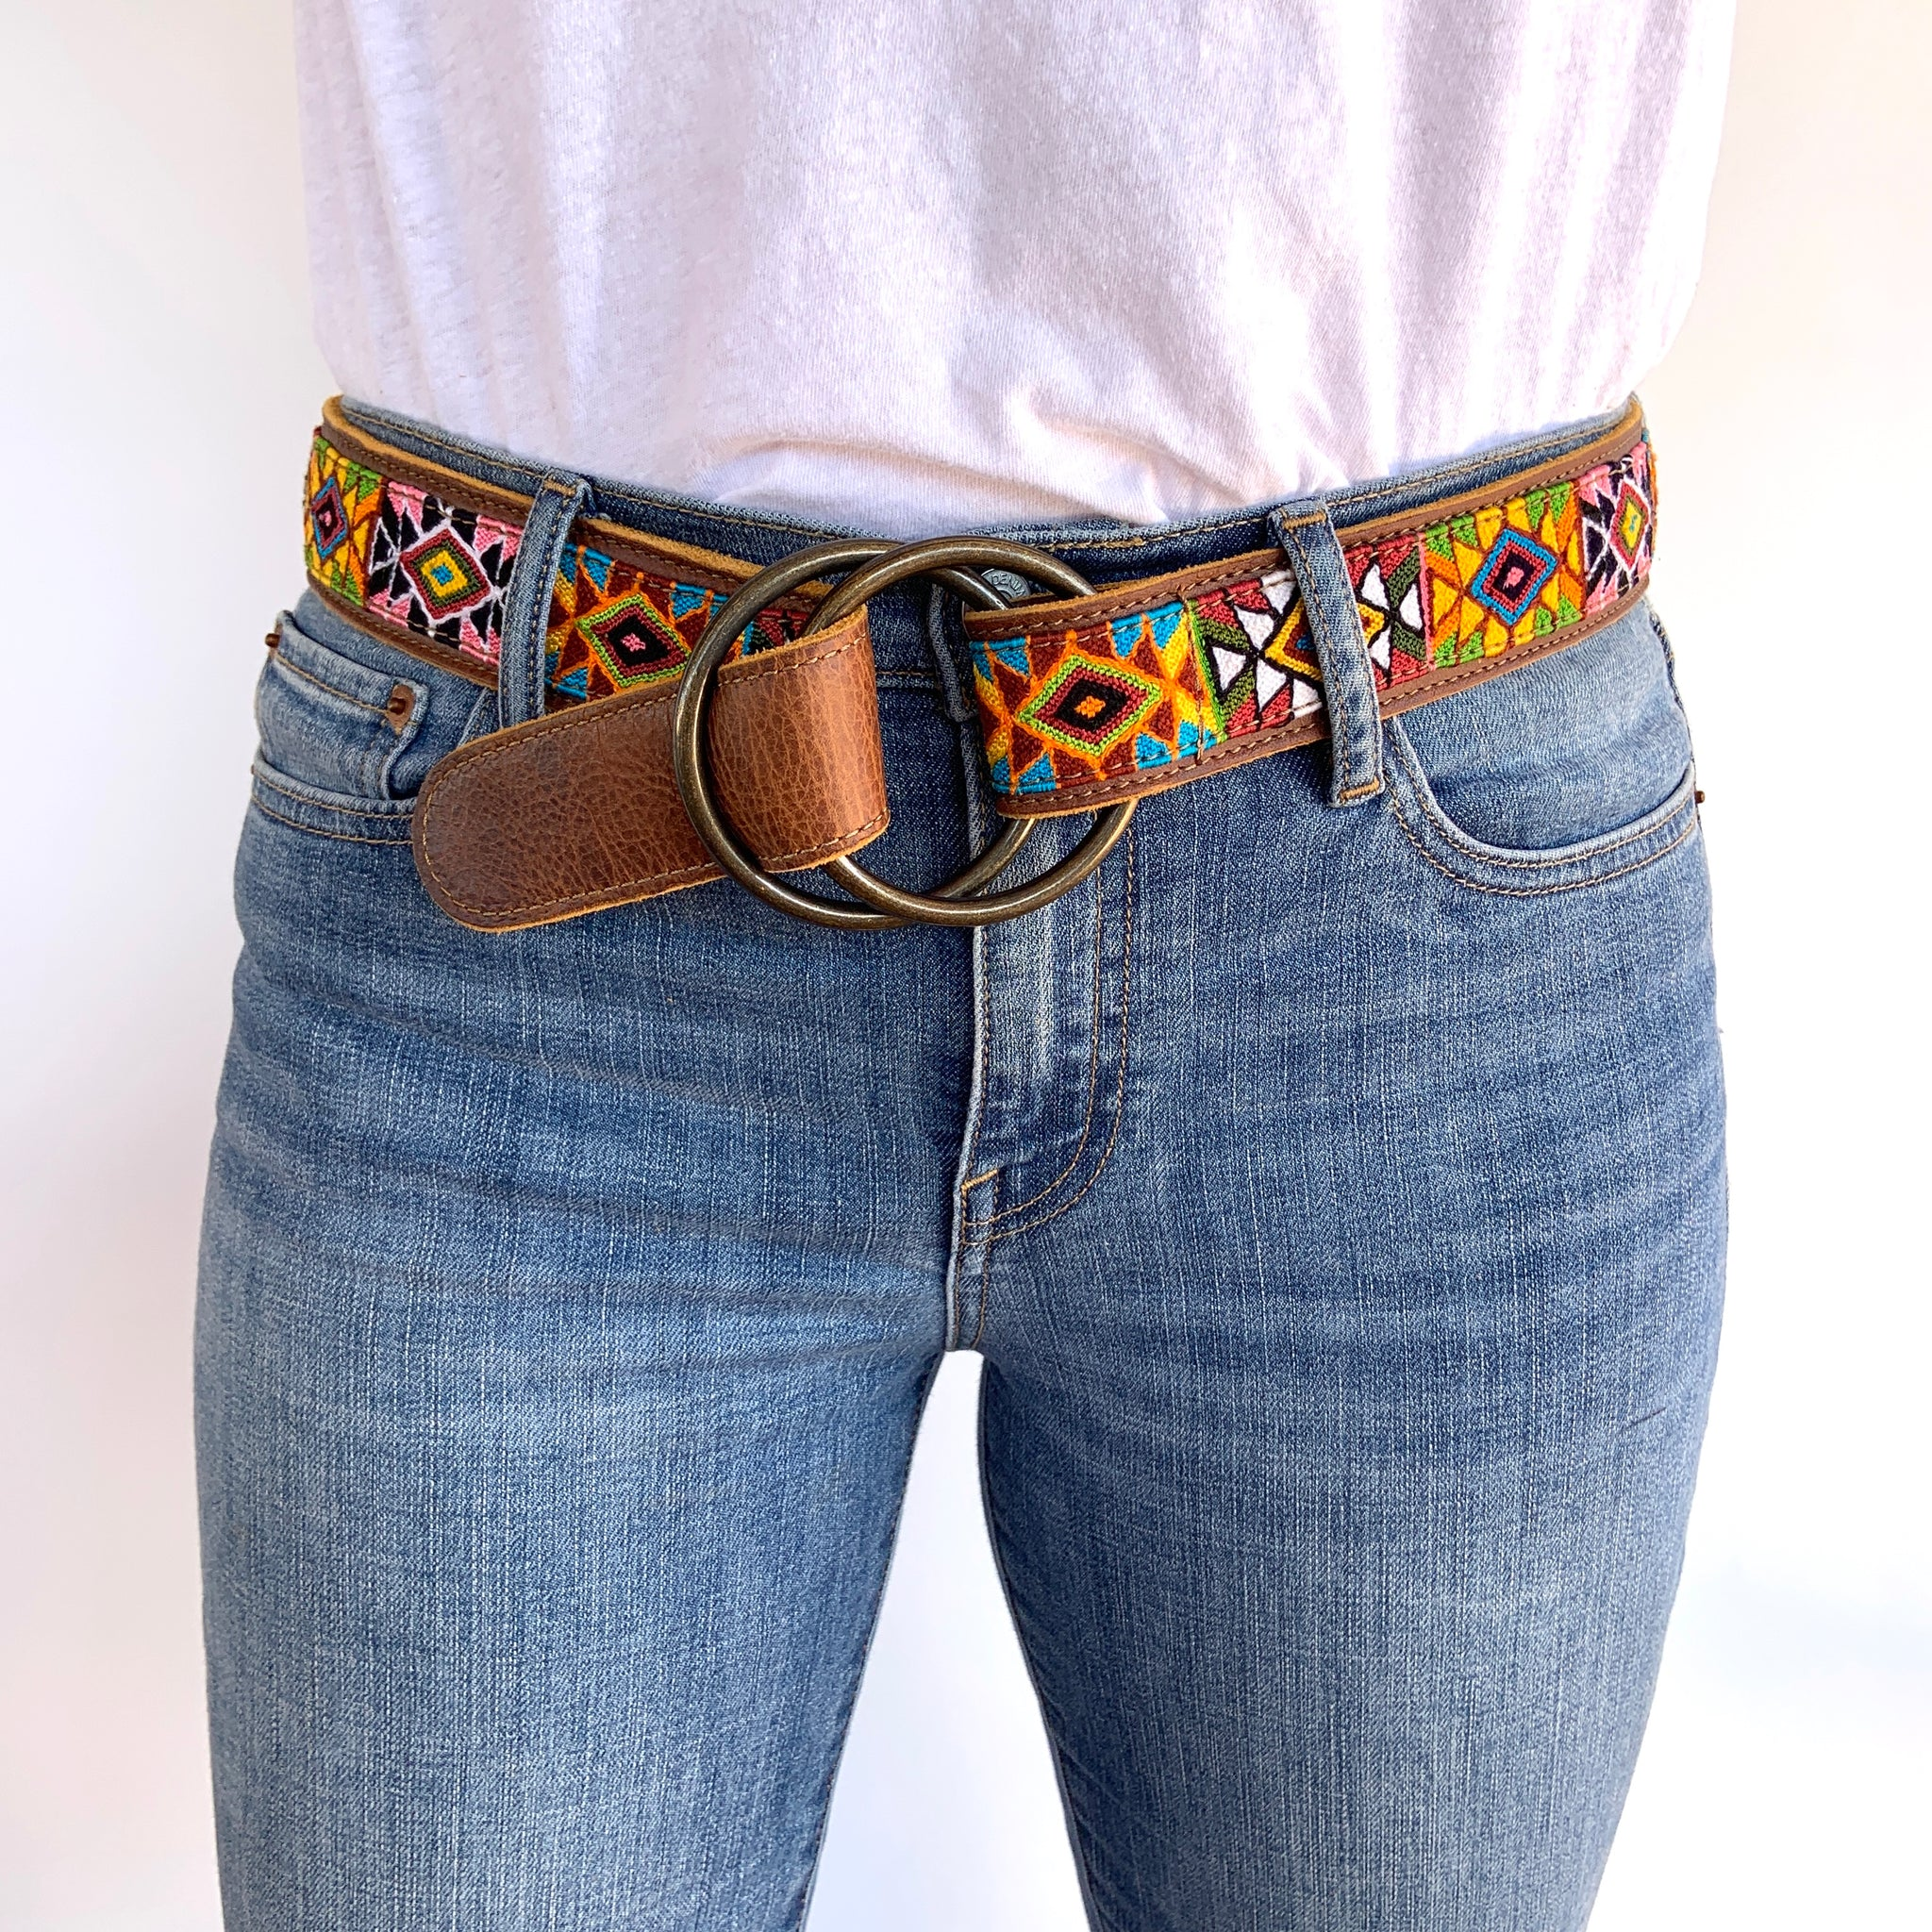 Virginia O-Ring Belt Medium -WS